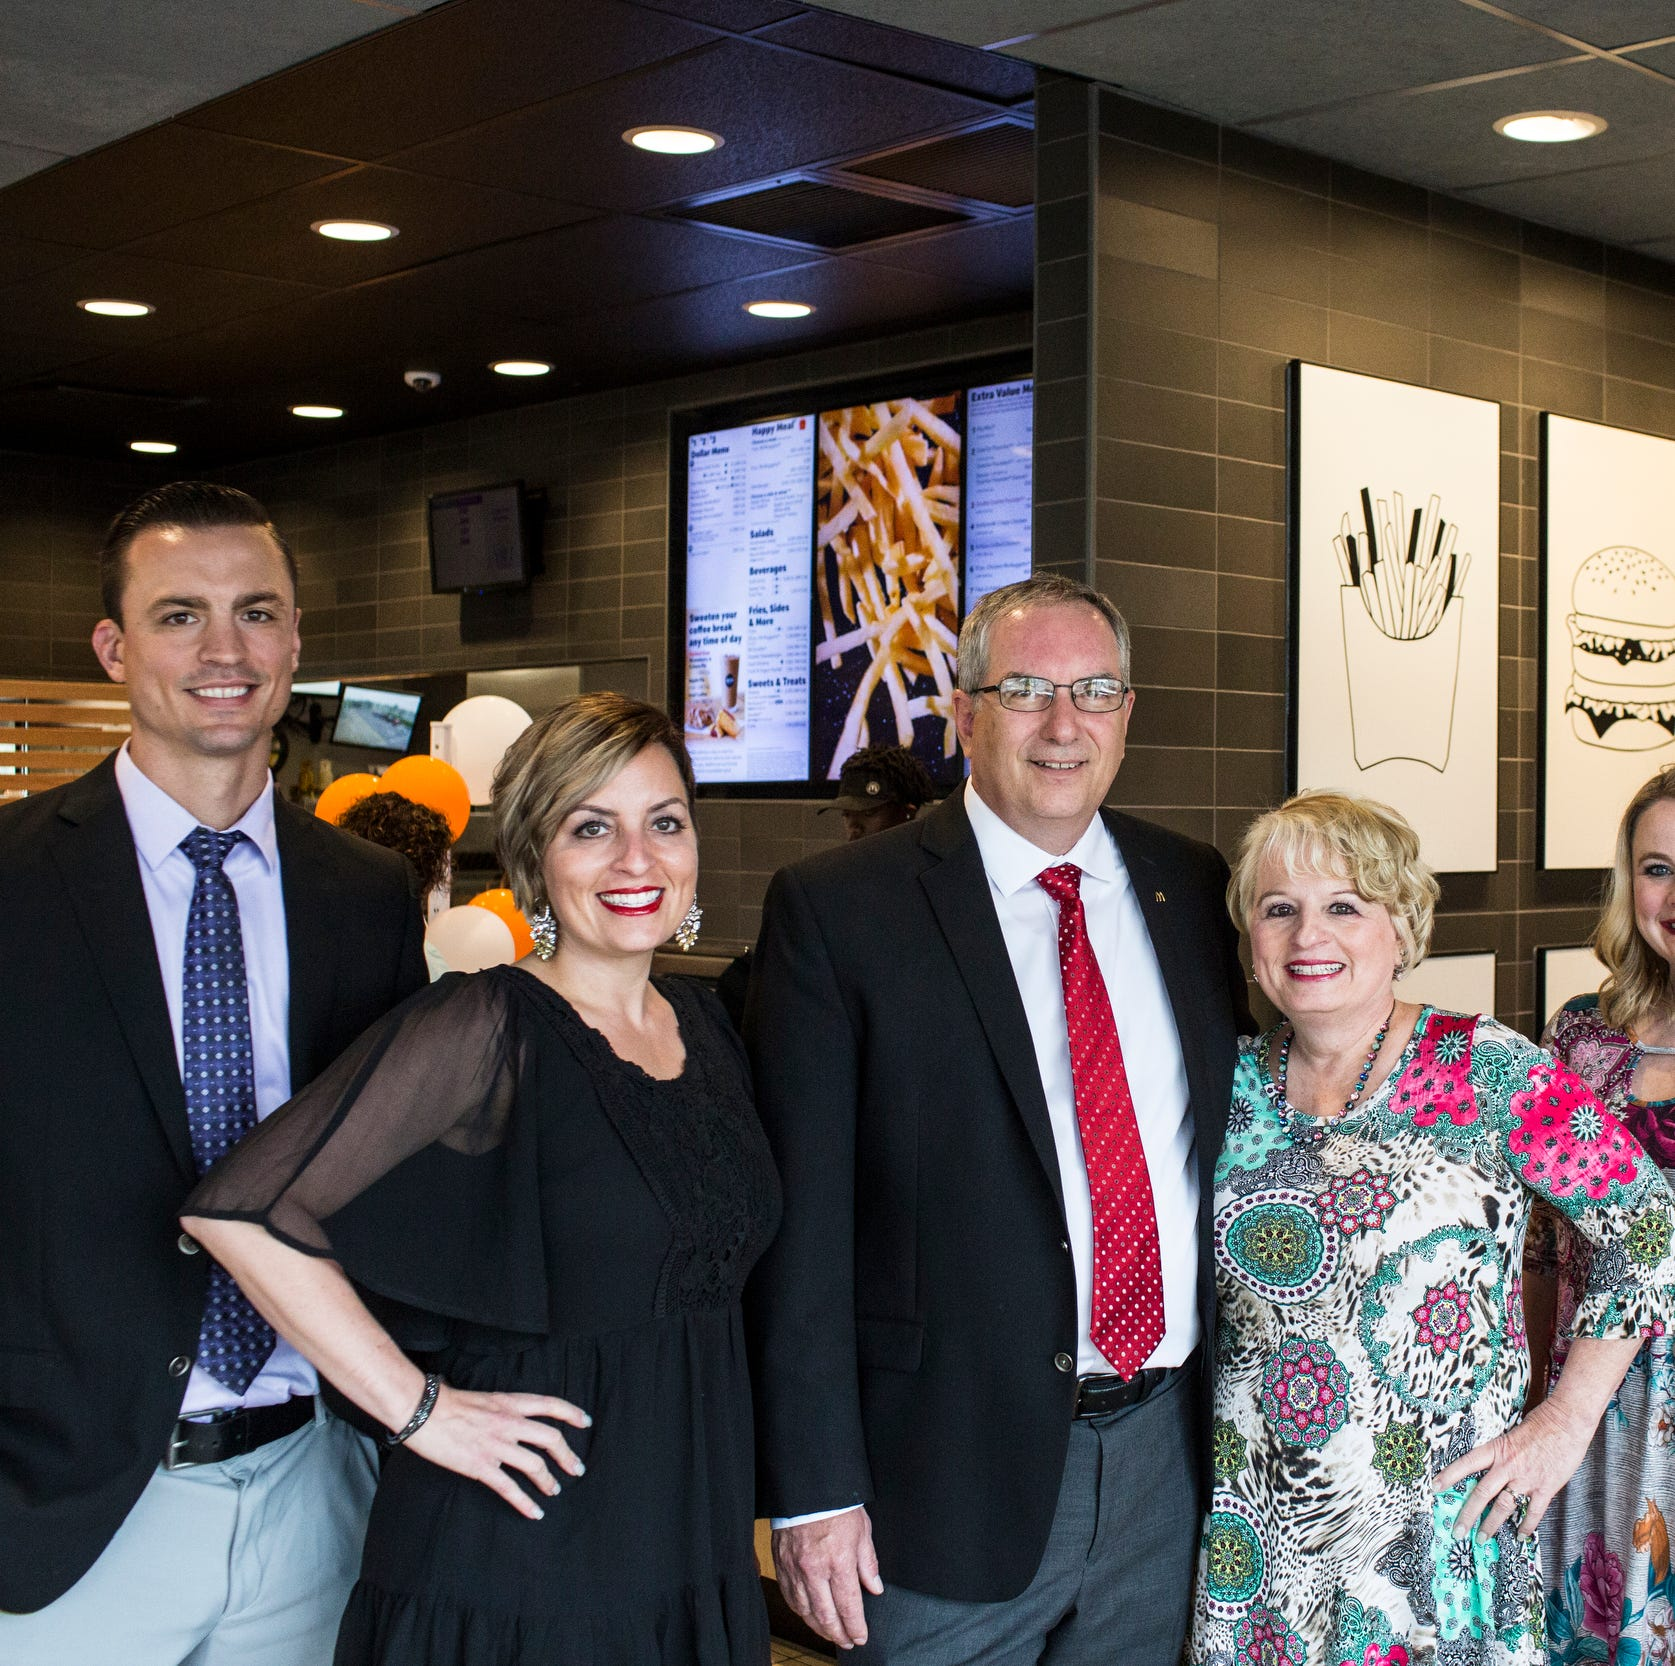 McDonald's dynasty: Why a family moved from Illinois to Collierville to grow their business